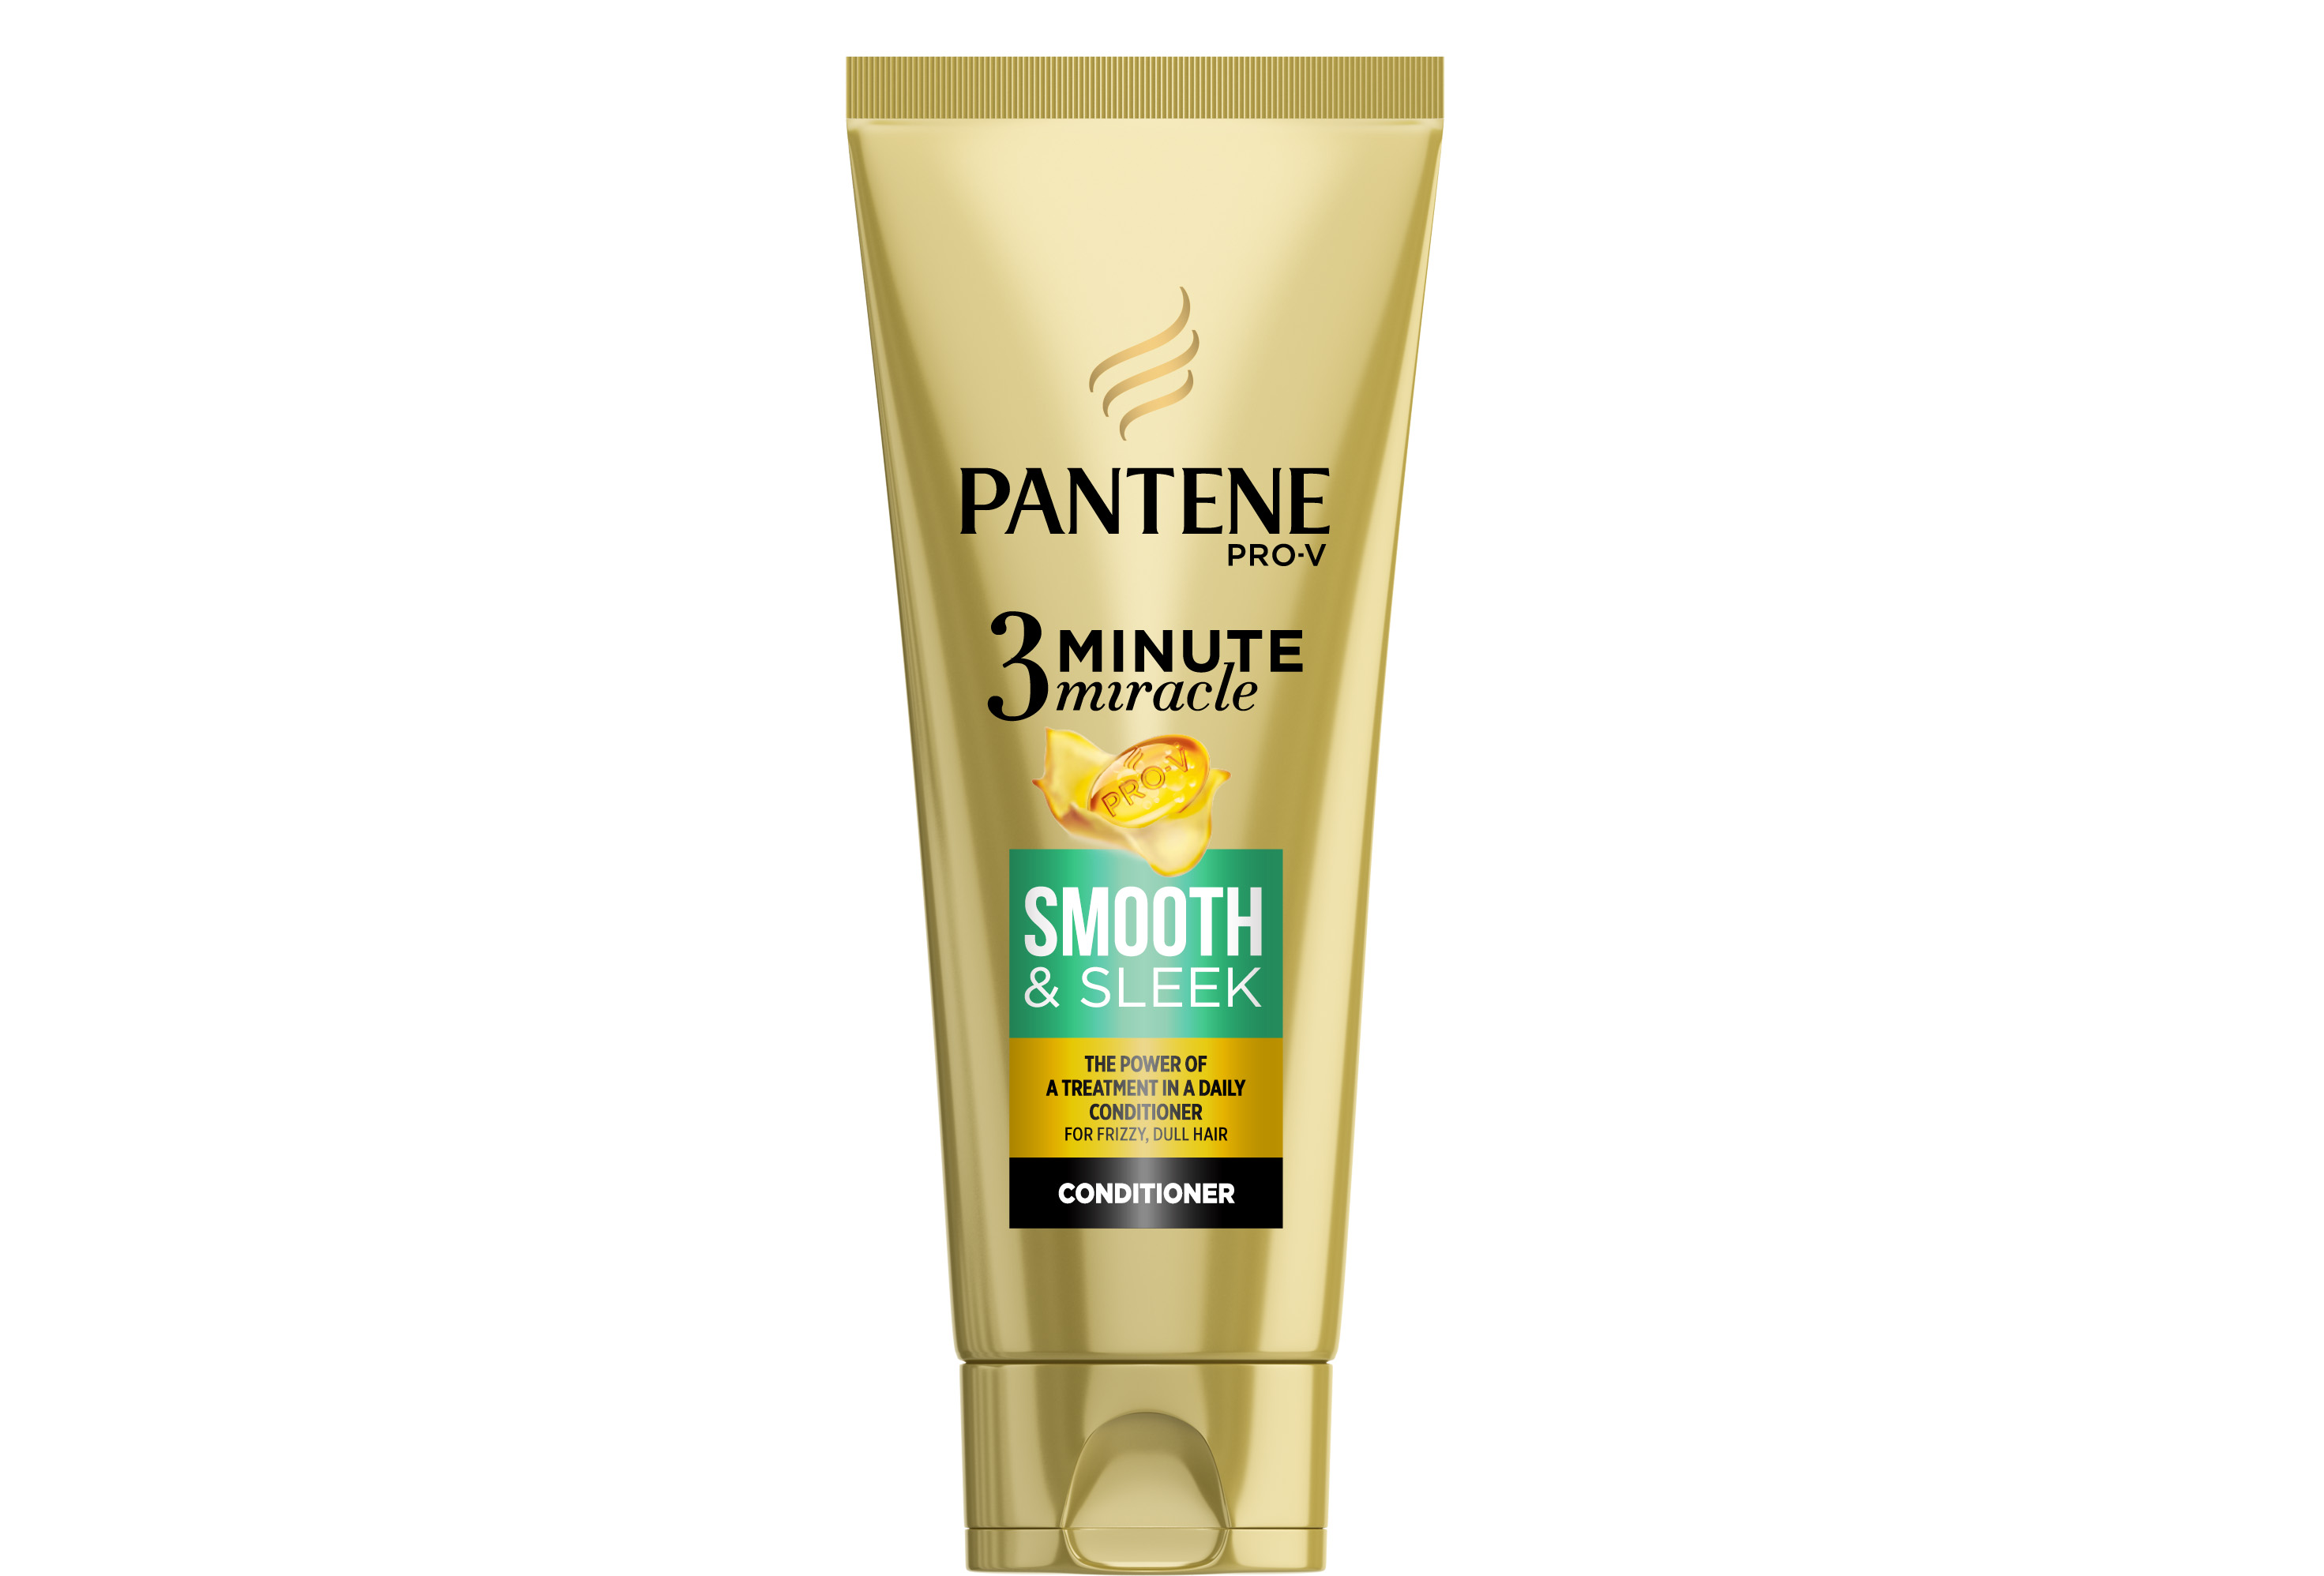 Pantene 3 Minute Miracle Smooth & Sleek